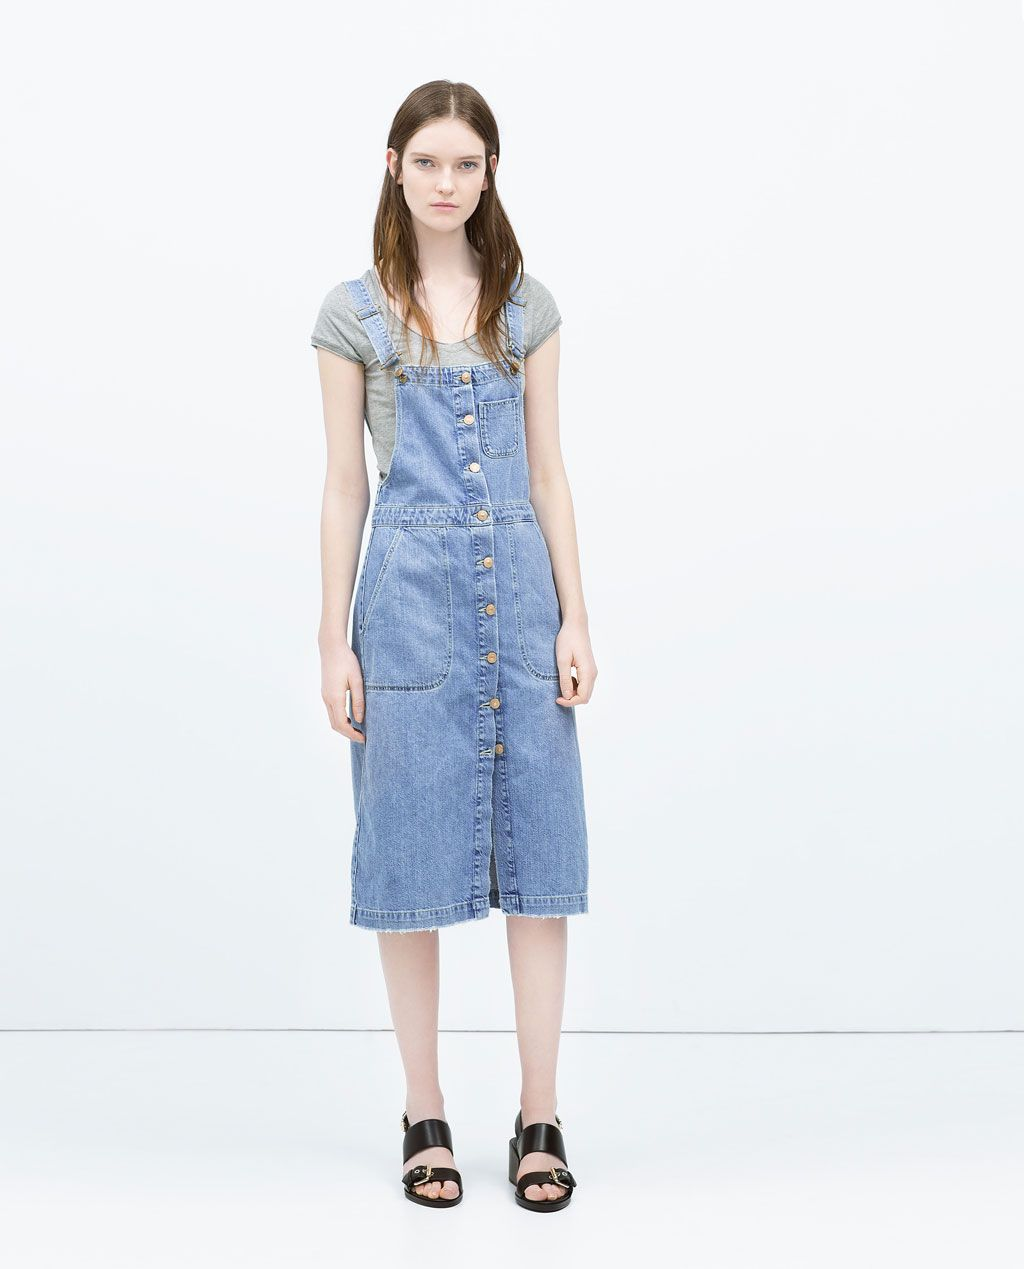 Begin March With The Latest Zara TRF Lookbook